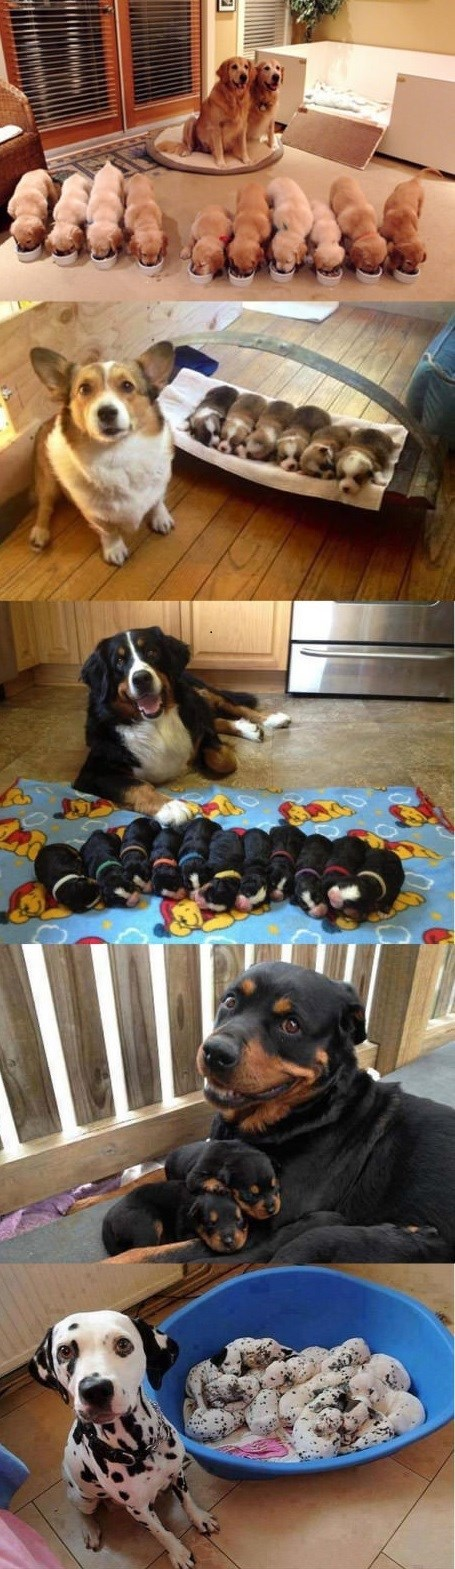 dogs,puppies,parenting,proud,family